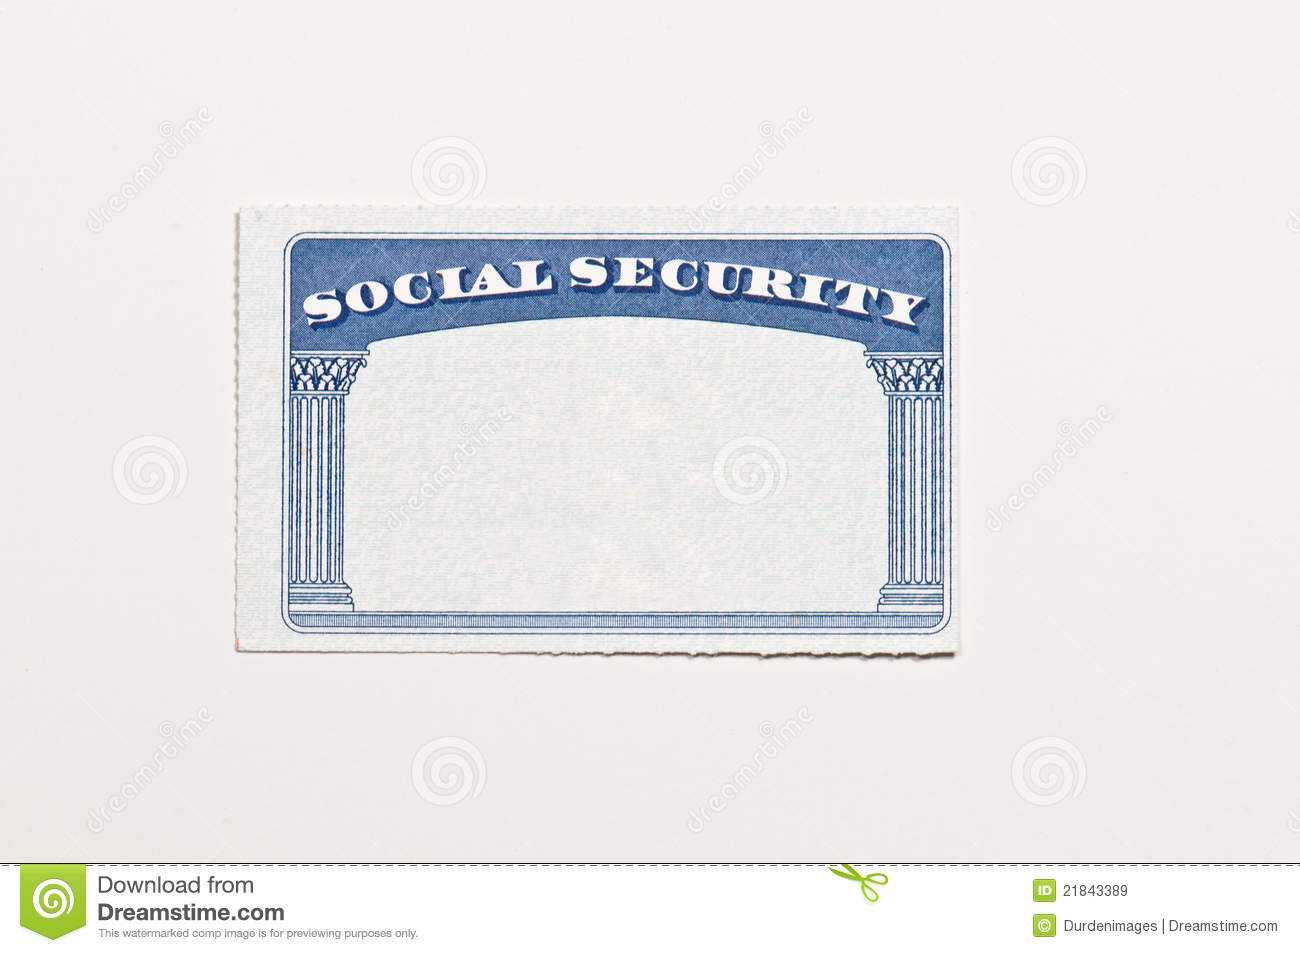 Blank Social Security Card Stock Image. Image Of Document With Ss Card Template